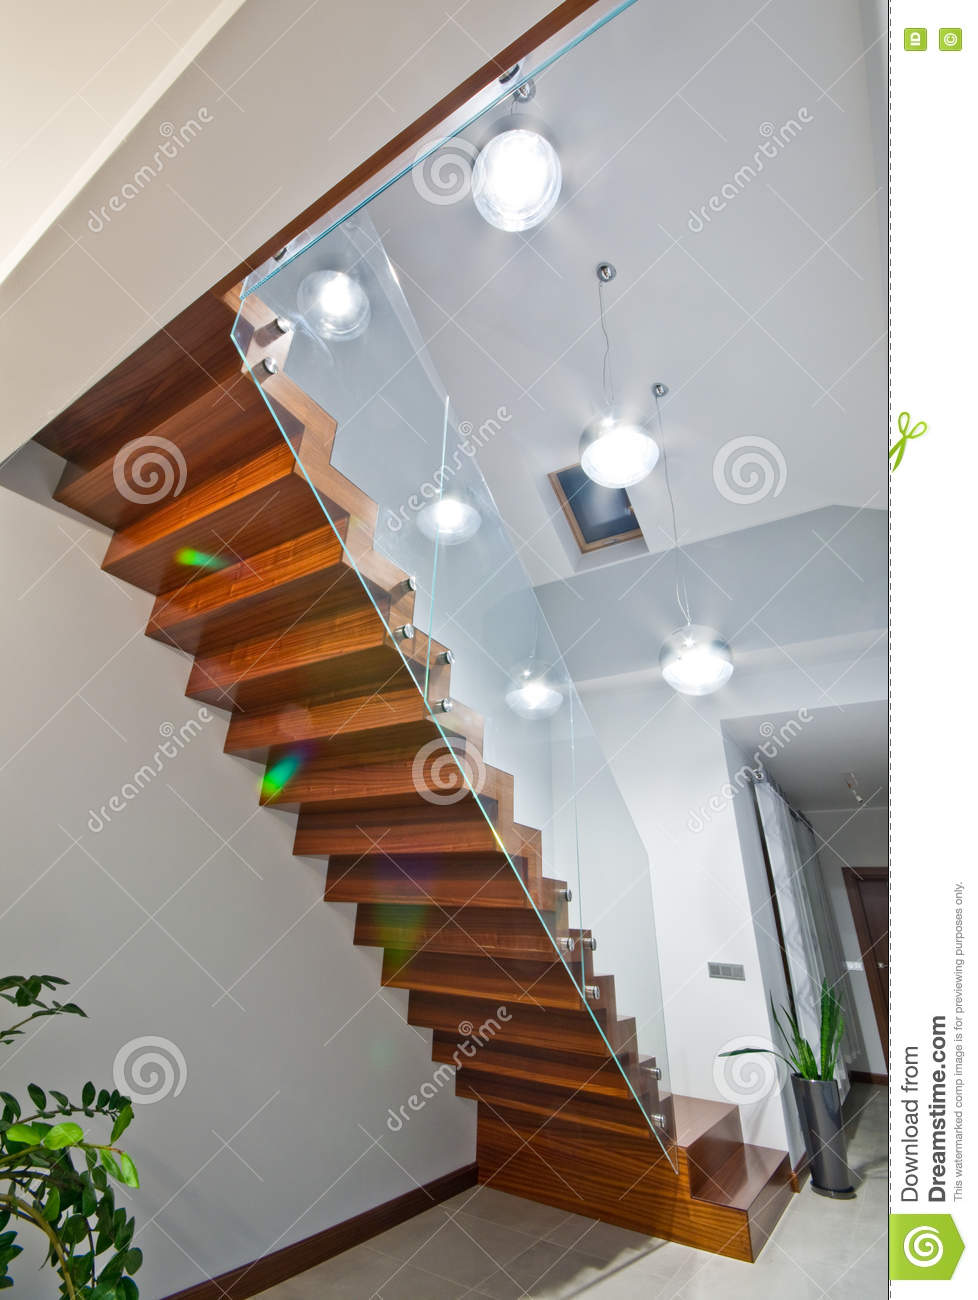 Modern stairs in the interior of the house